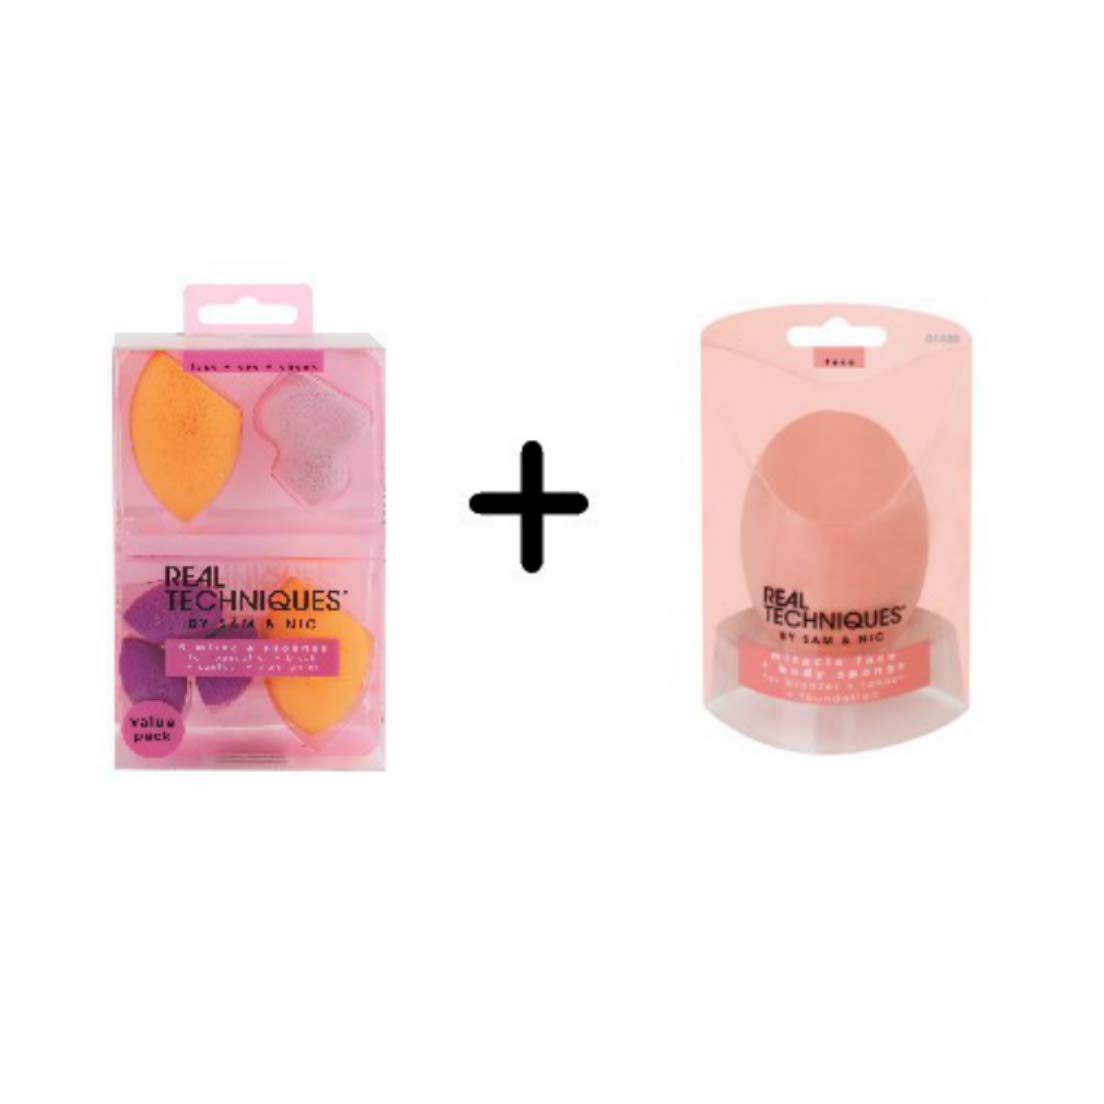 Real Techniques 6 Miracle Complexion Sponges + Miracle Complexion Body Sponge Value Set